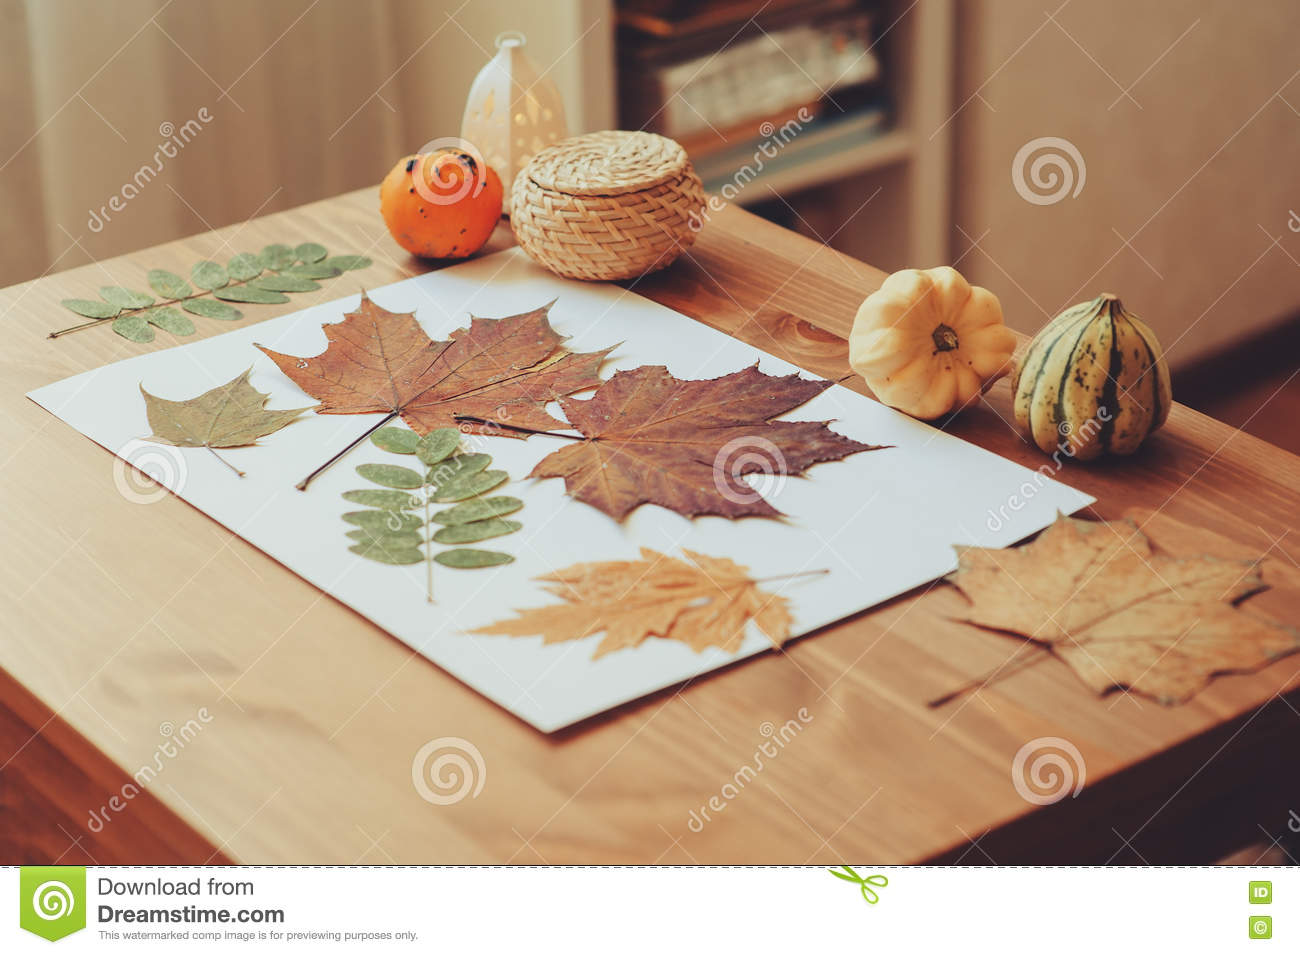 Preparations For Autumn Craft With Kids Herbarium From Dried Leaves